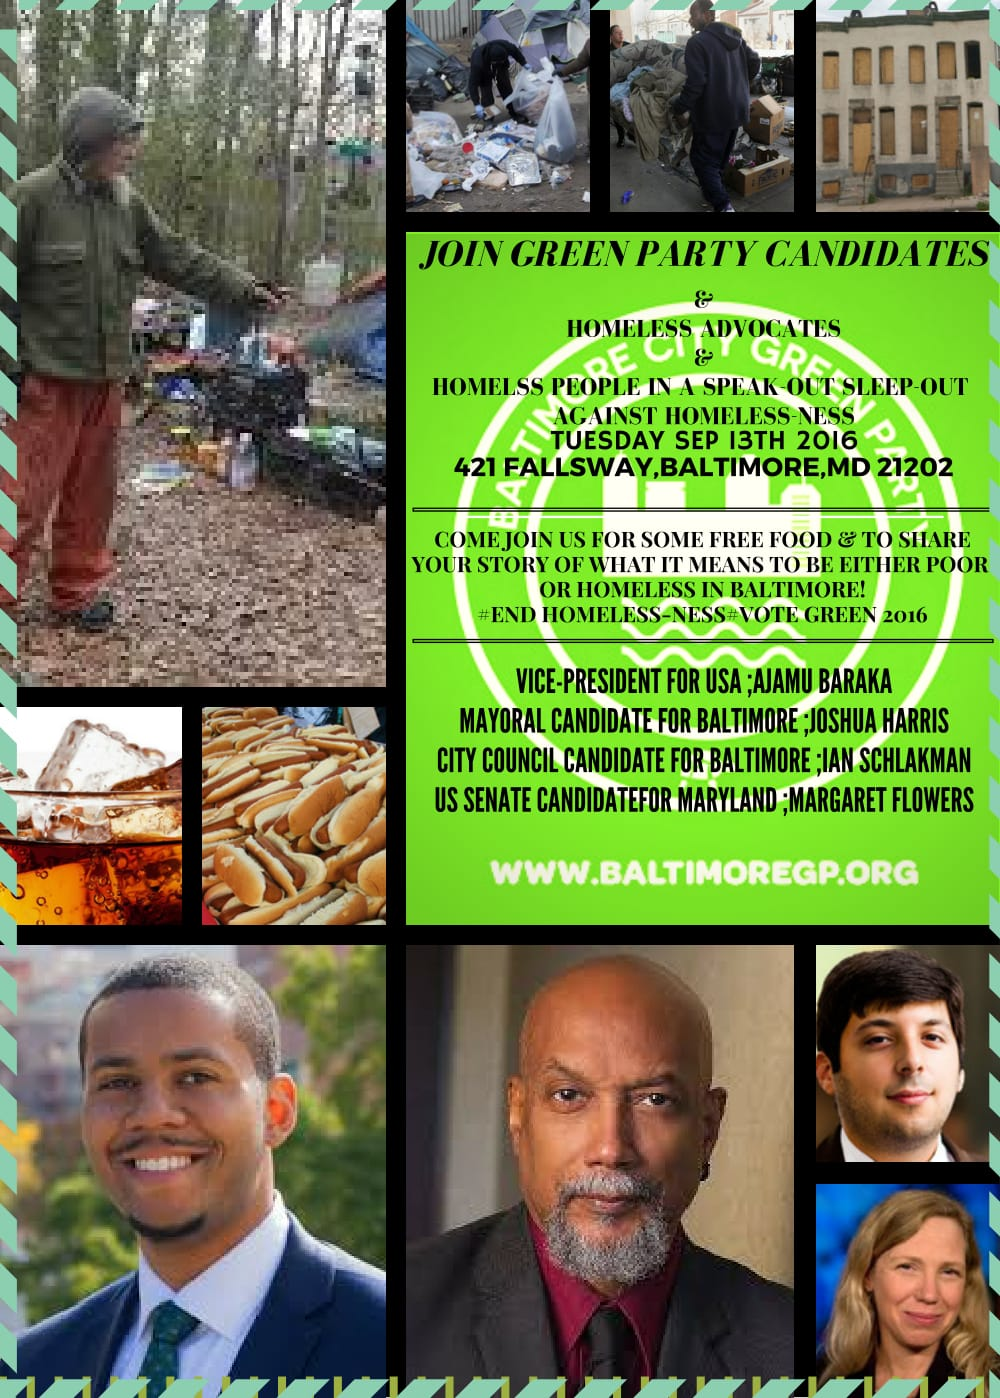 JOIN_GREEN_PARTY_CANDIDATES_(3)-1.jpg